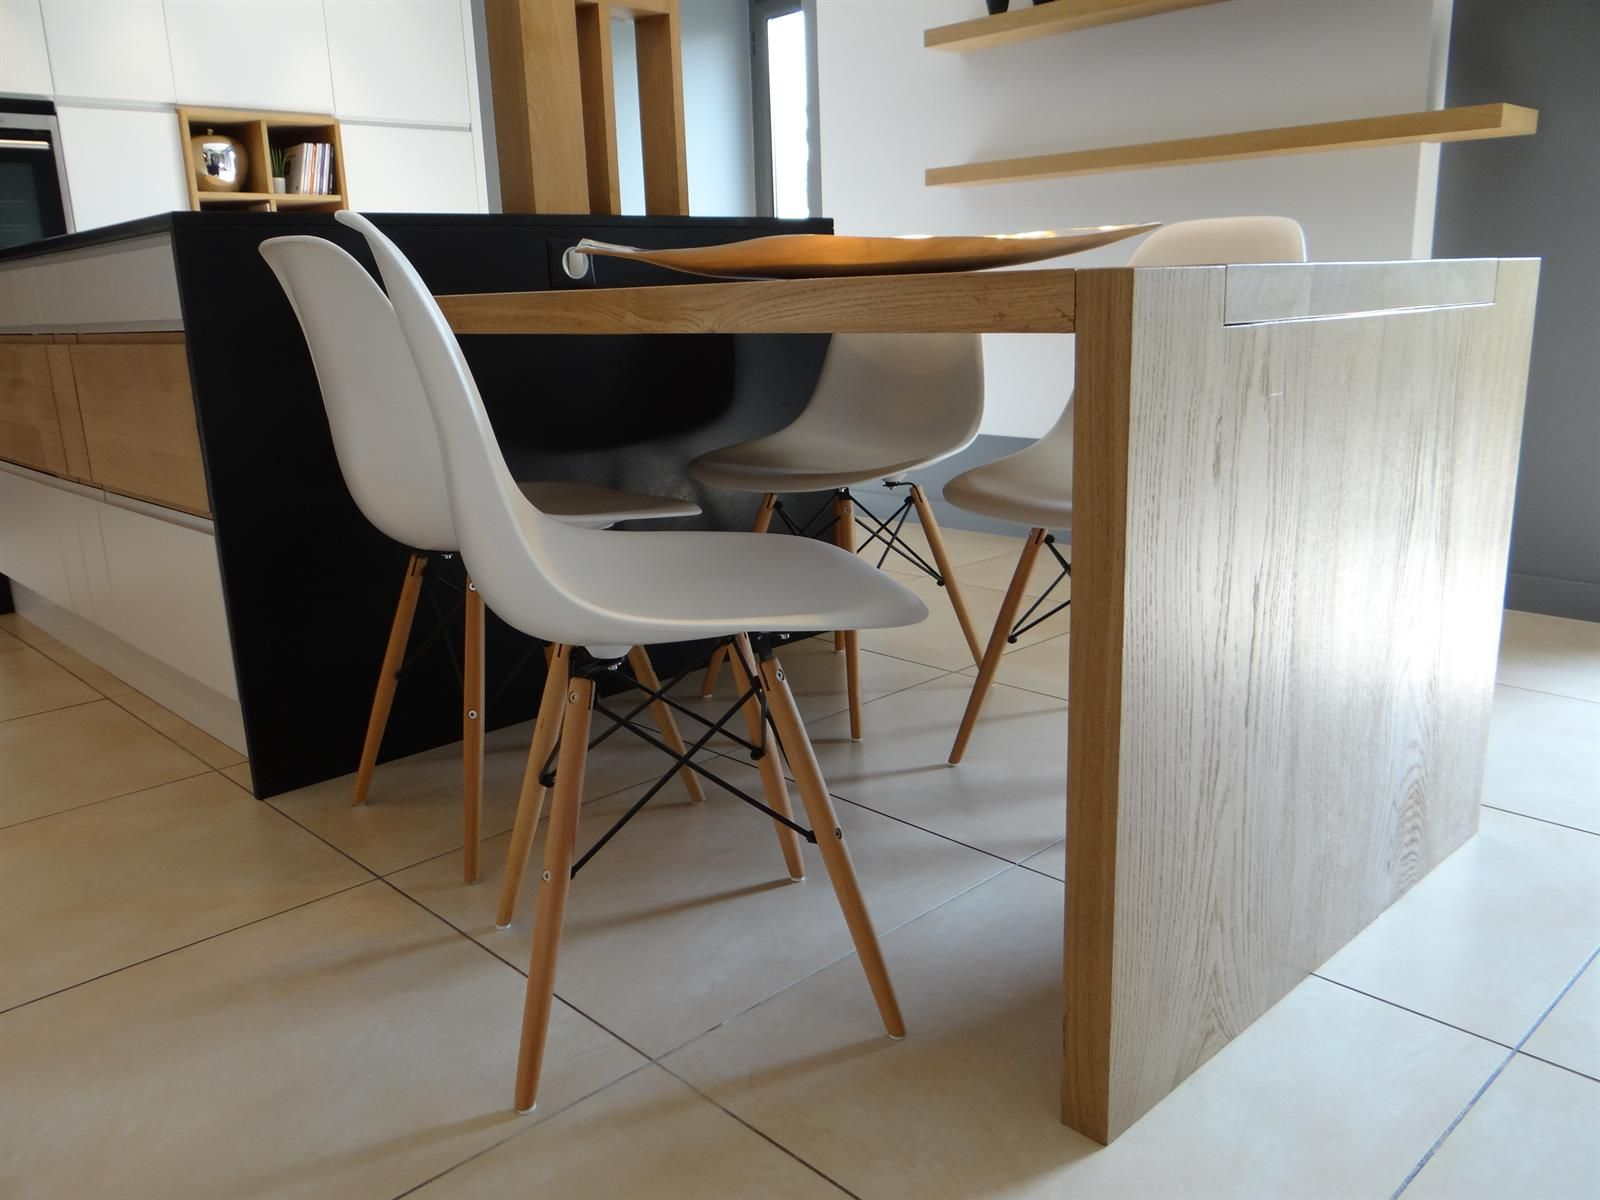 La table de cuisine en bois clair prolonge l 39 lot central for Ilot escamotable